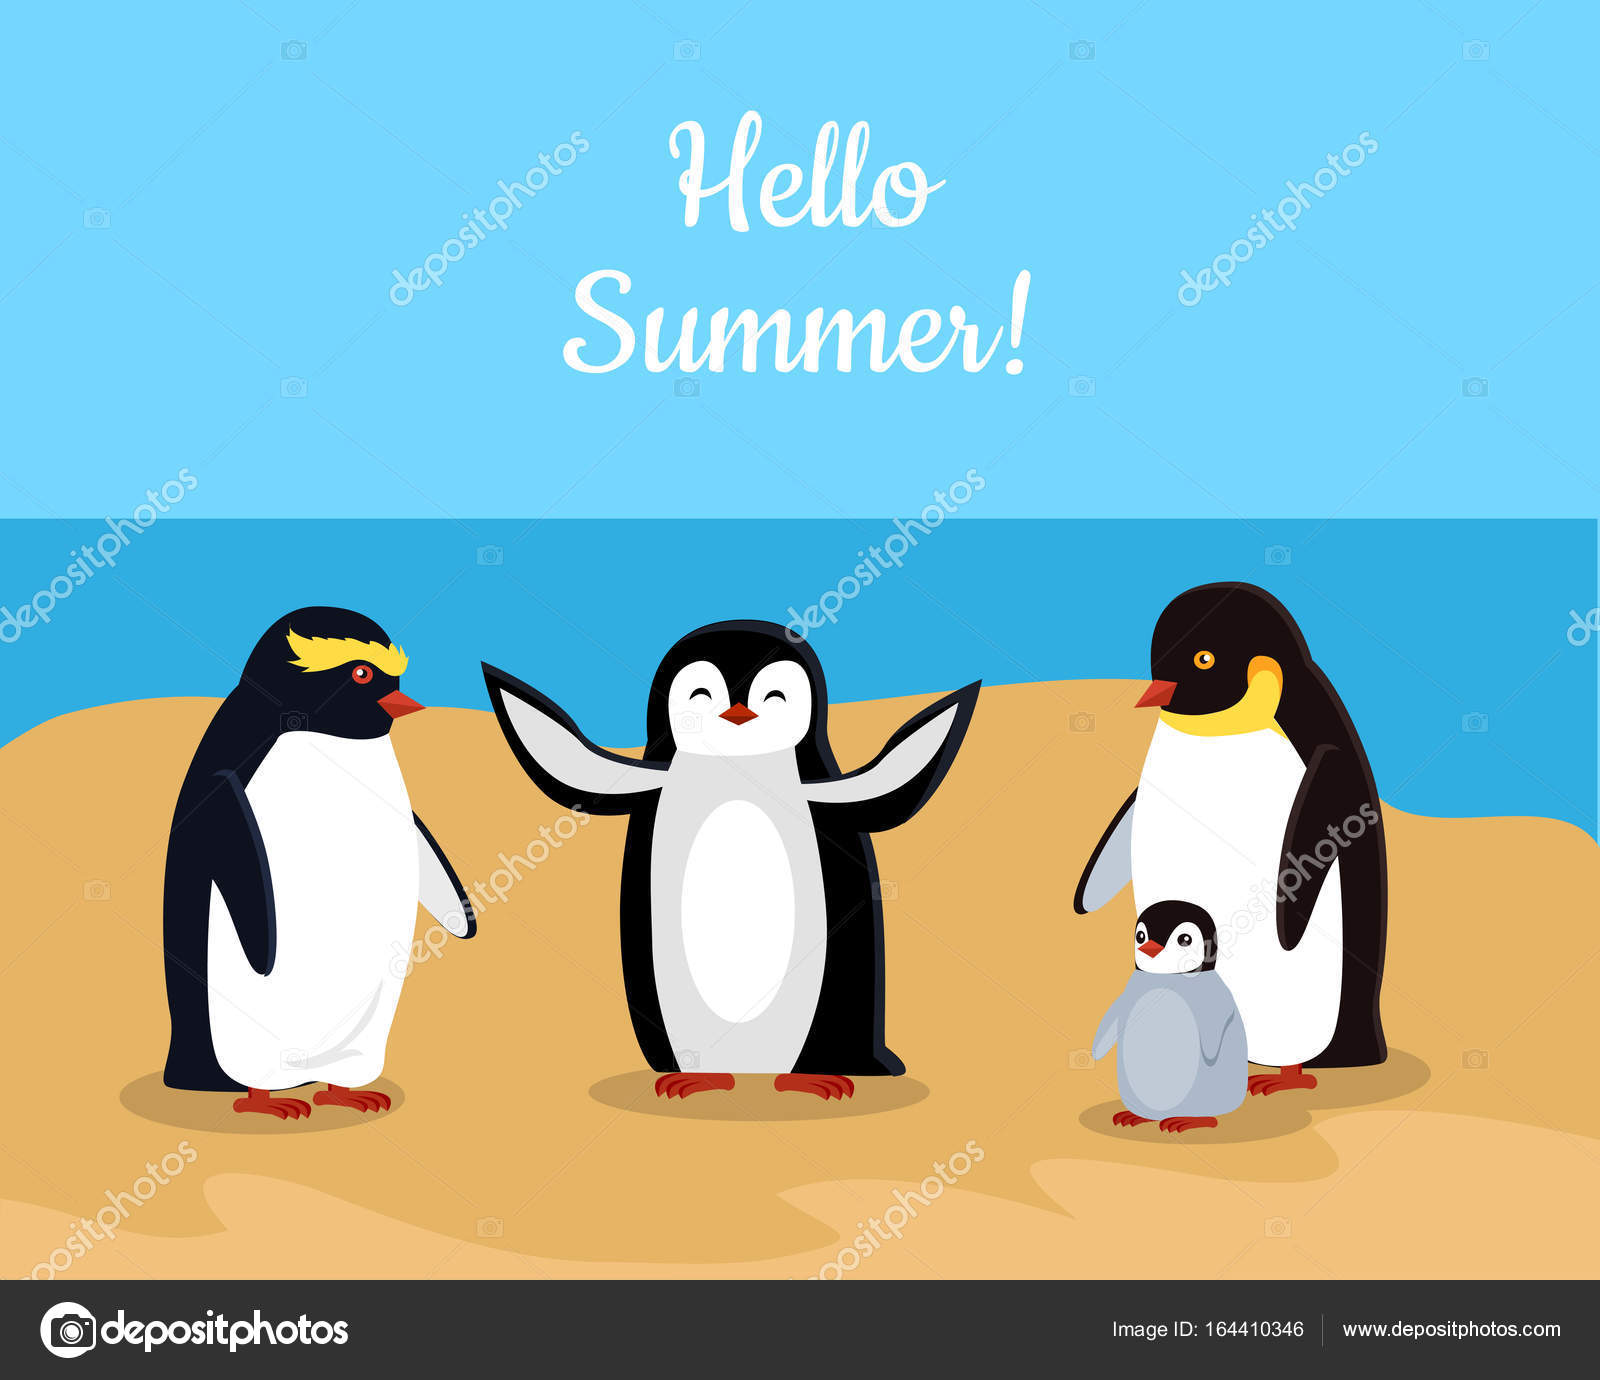 Hello Summer. Funny Emperor Penguins Family U2014 Stock Vector